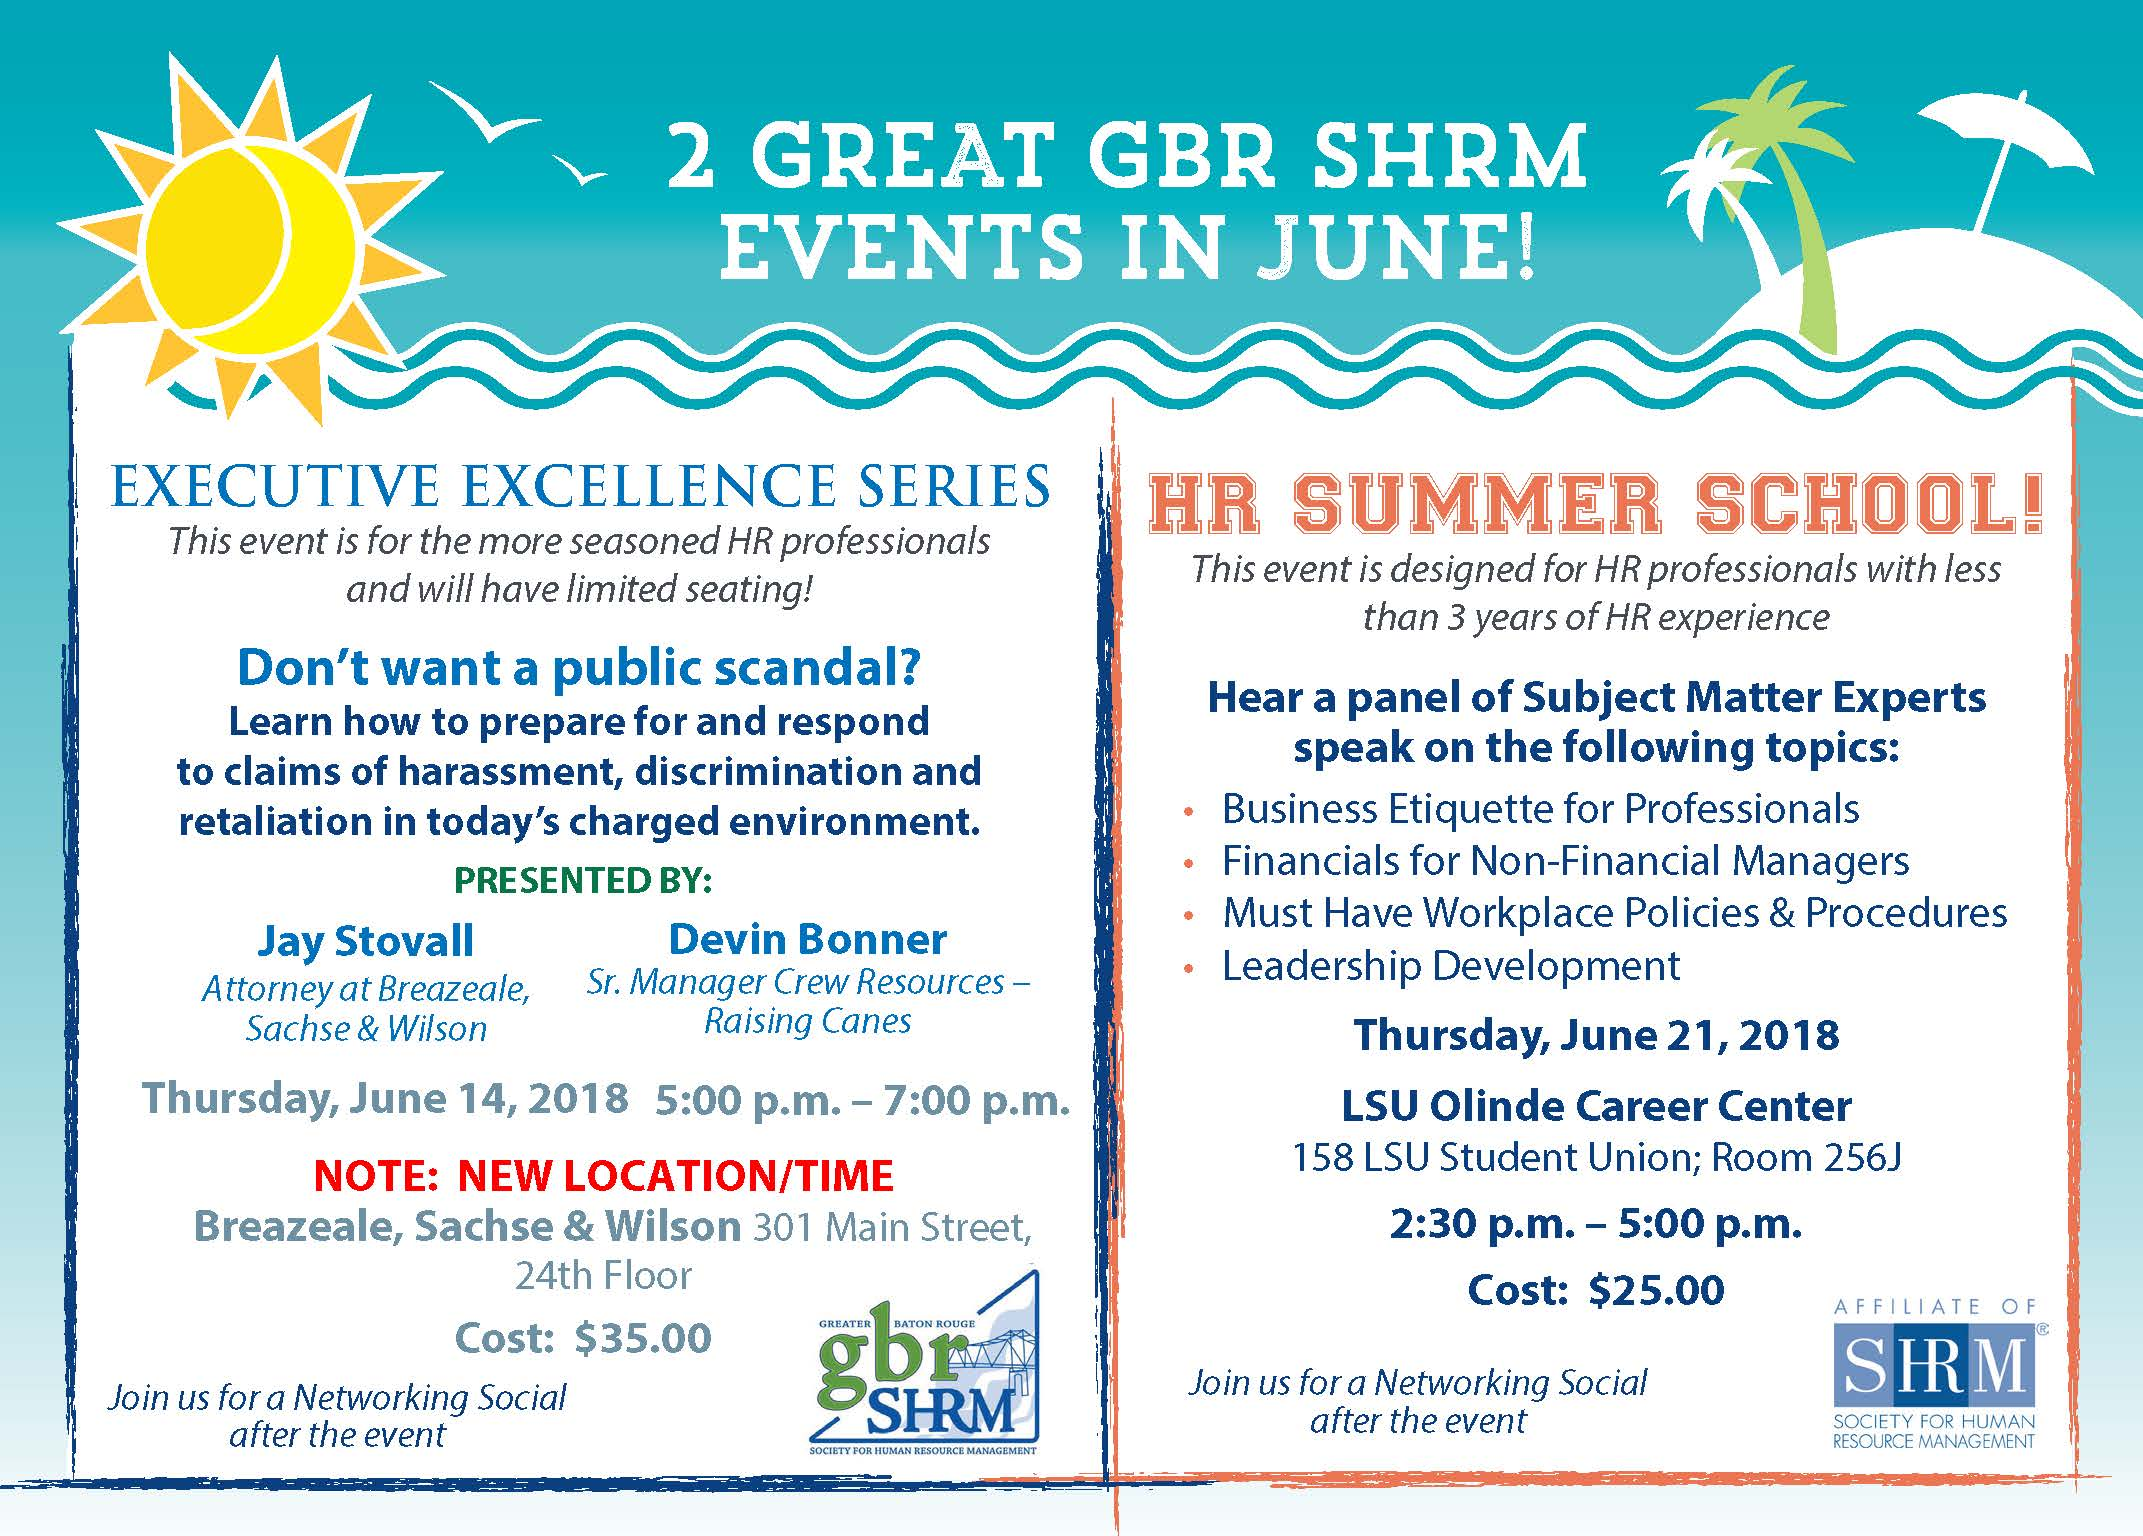 REVISED GBR SHRM_June Events 2018-5x7  FRONT